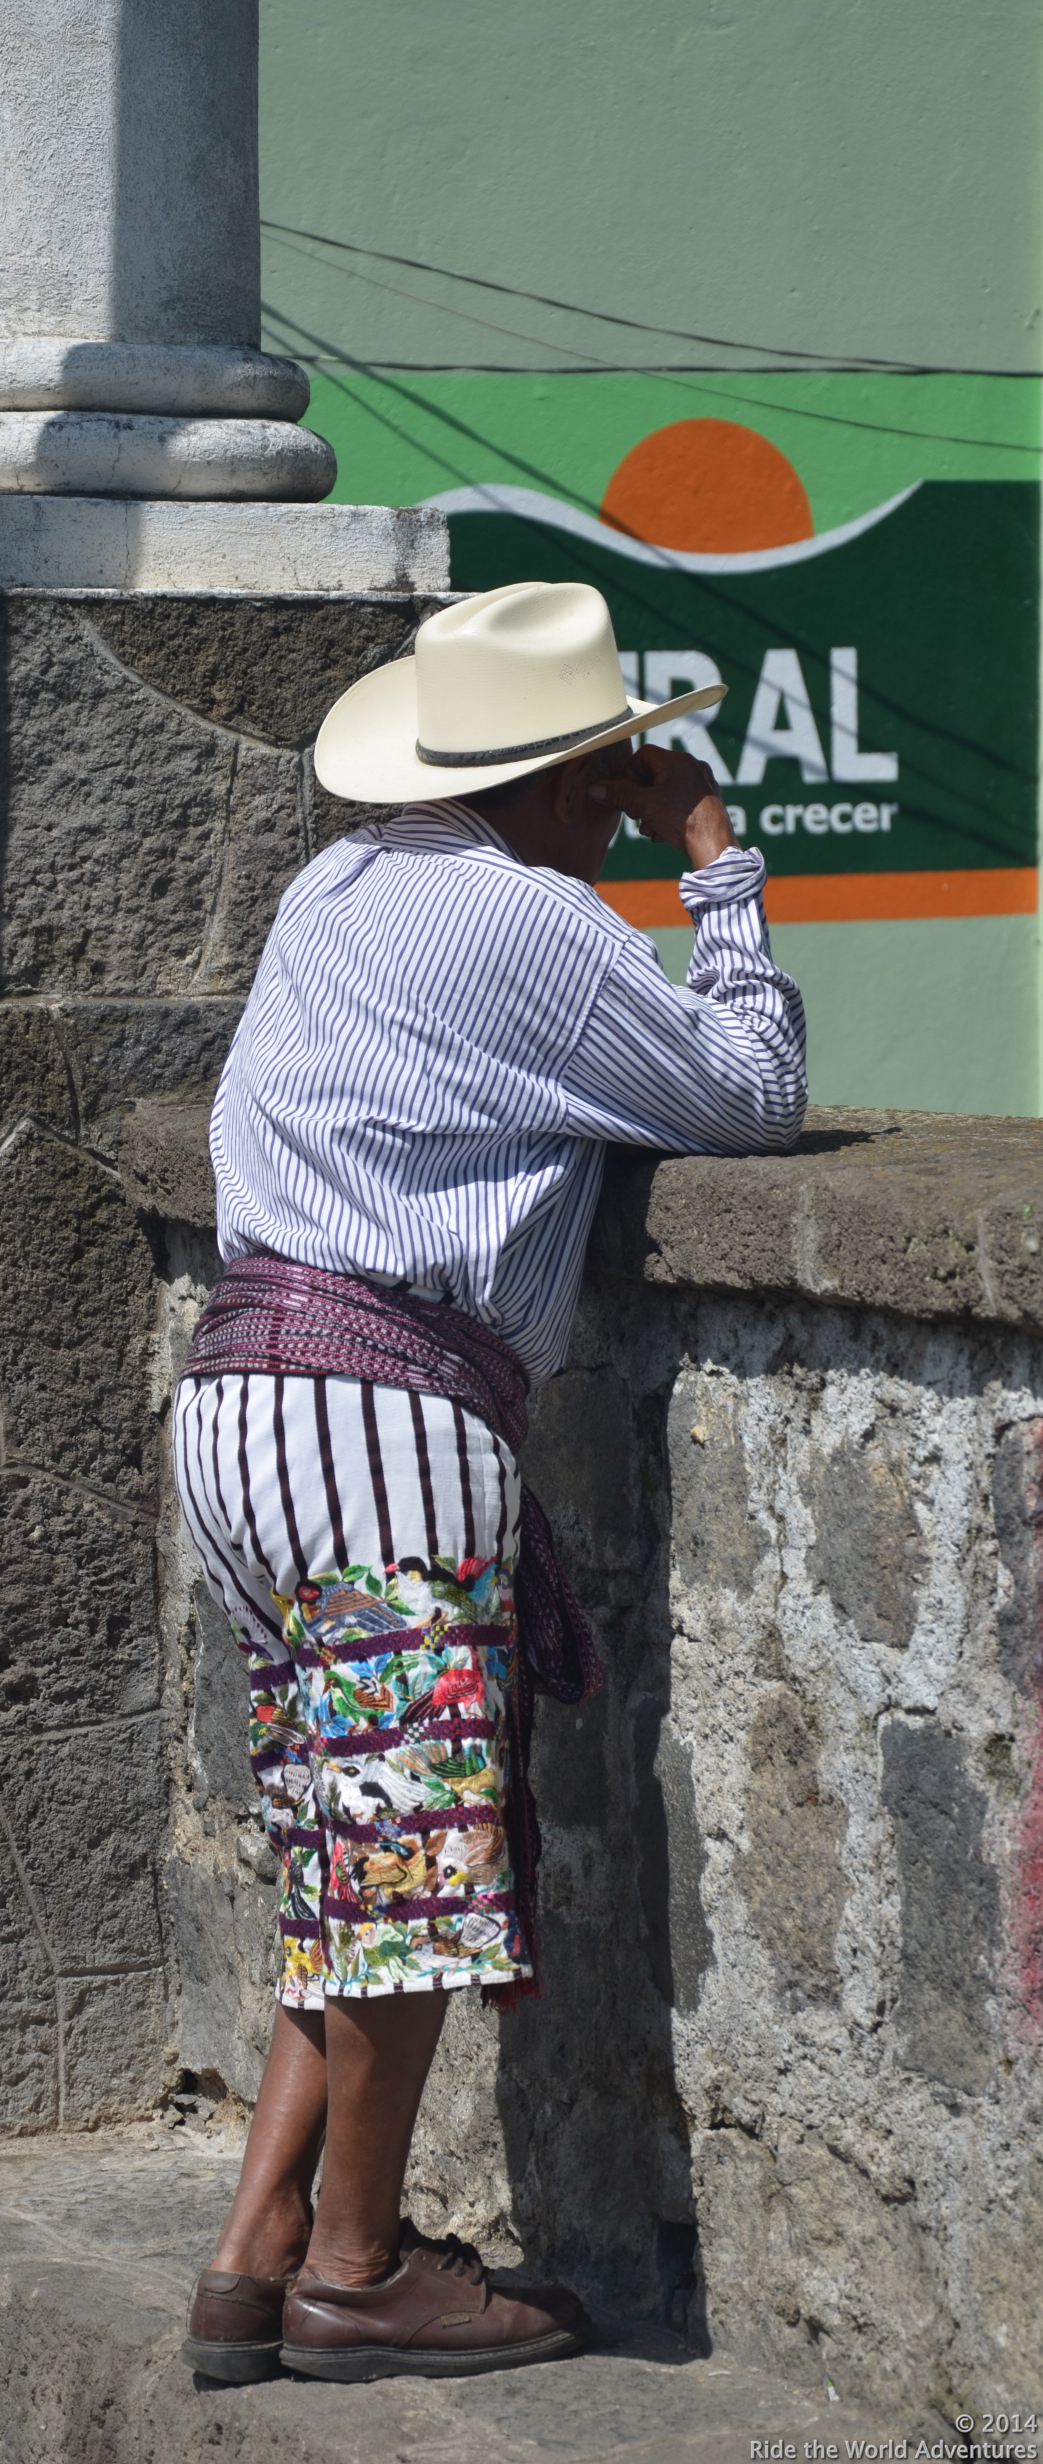 The striped material (top or bottom) is the regional traditional dress for the Santiago area.